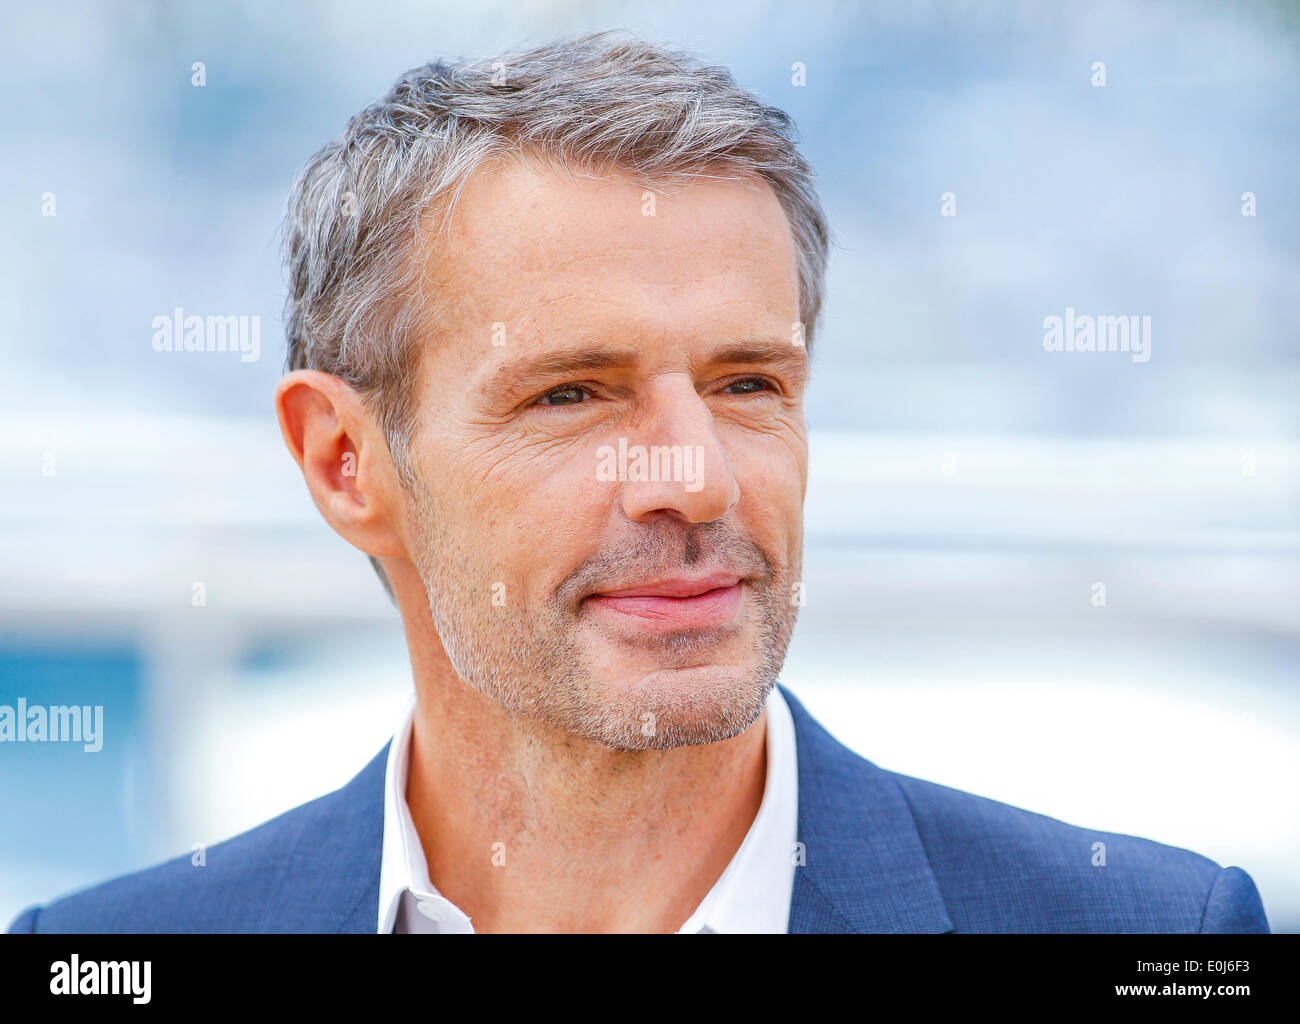 LAMBERT WILSON MASTER OF CEREMONIES PHOTOCALL. 67TH CANNES FILM FESTIVAL CANNES  FRANCE 14 May 2014 Stock Photo